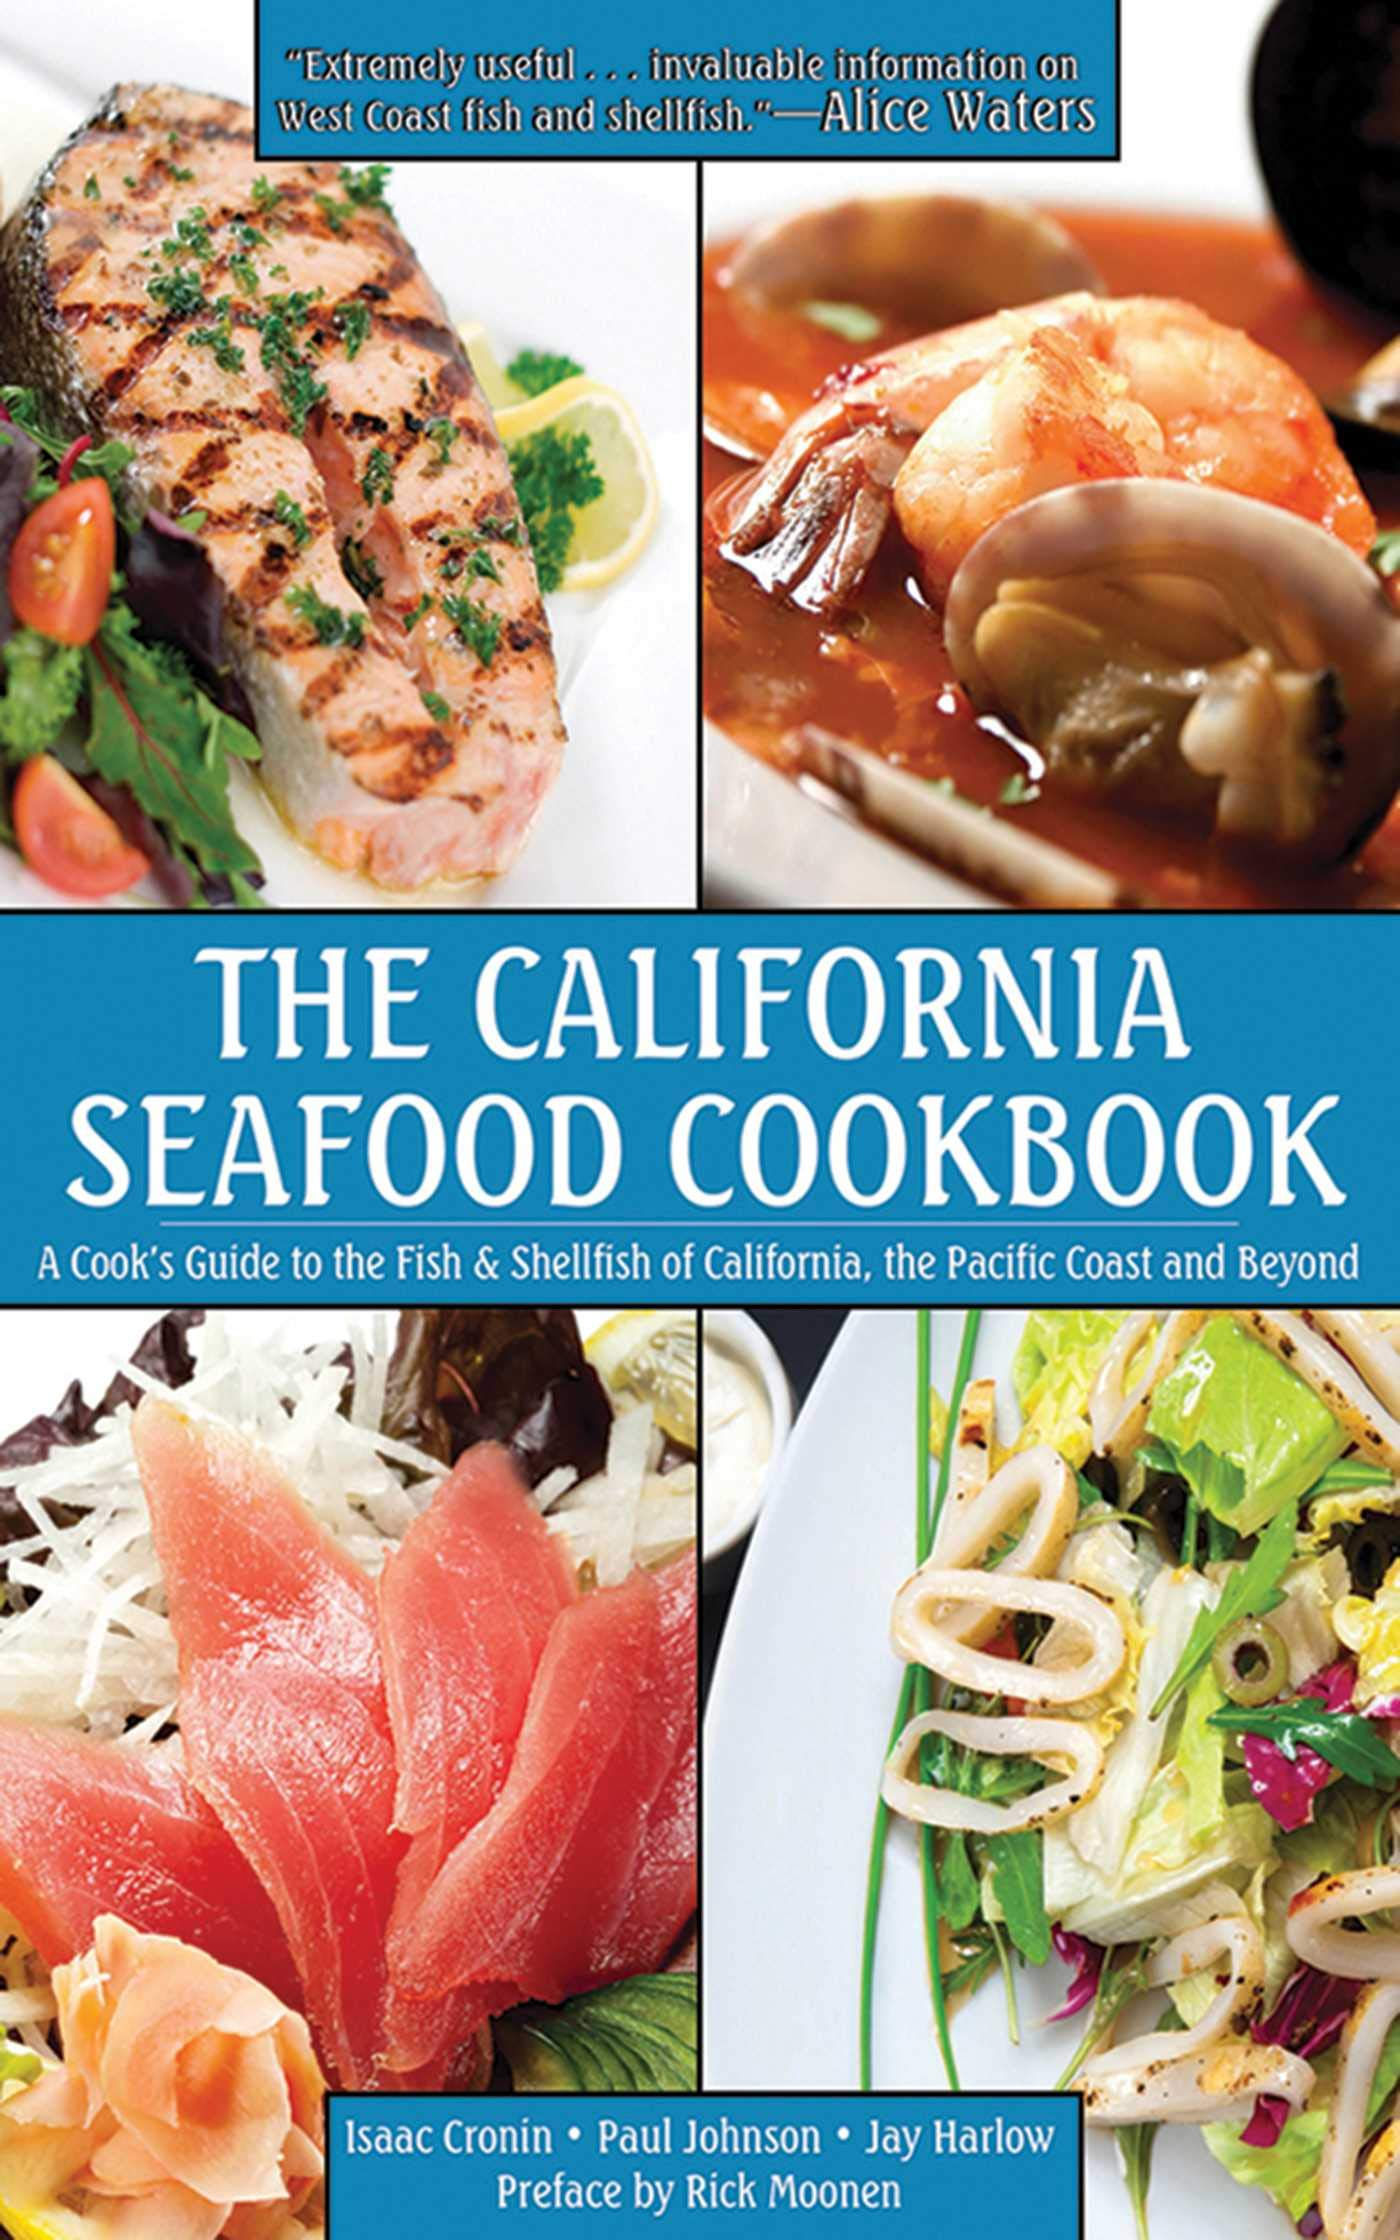 Image OfThe California Seafood Cookbook: A Cook's Guide To The Fish And Shellfish Of California, The Pacific Coast, And Beyond (En...